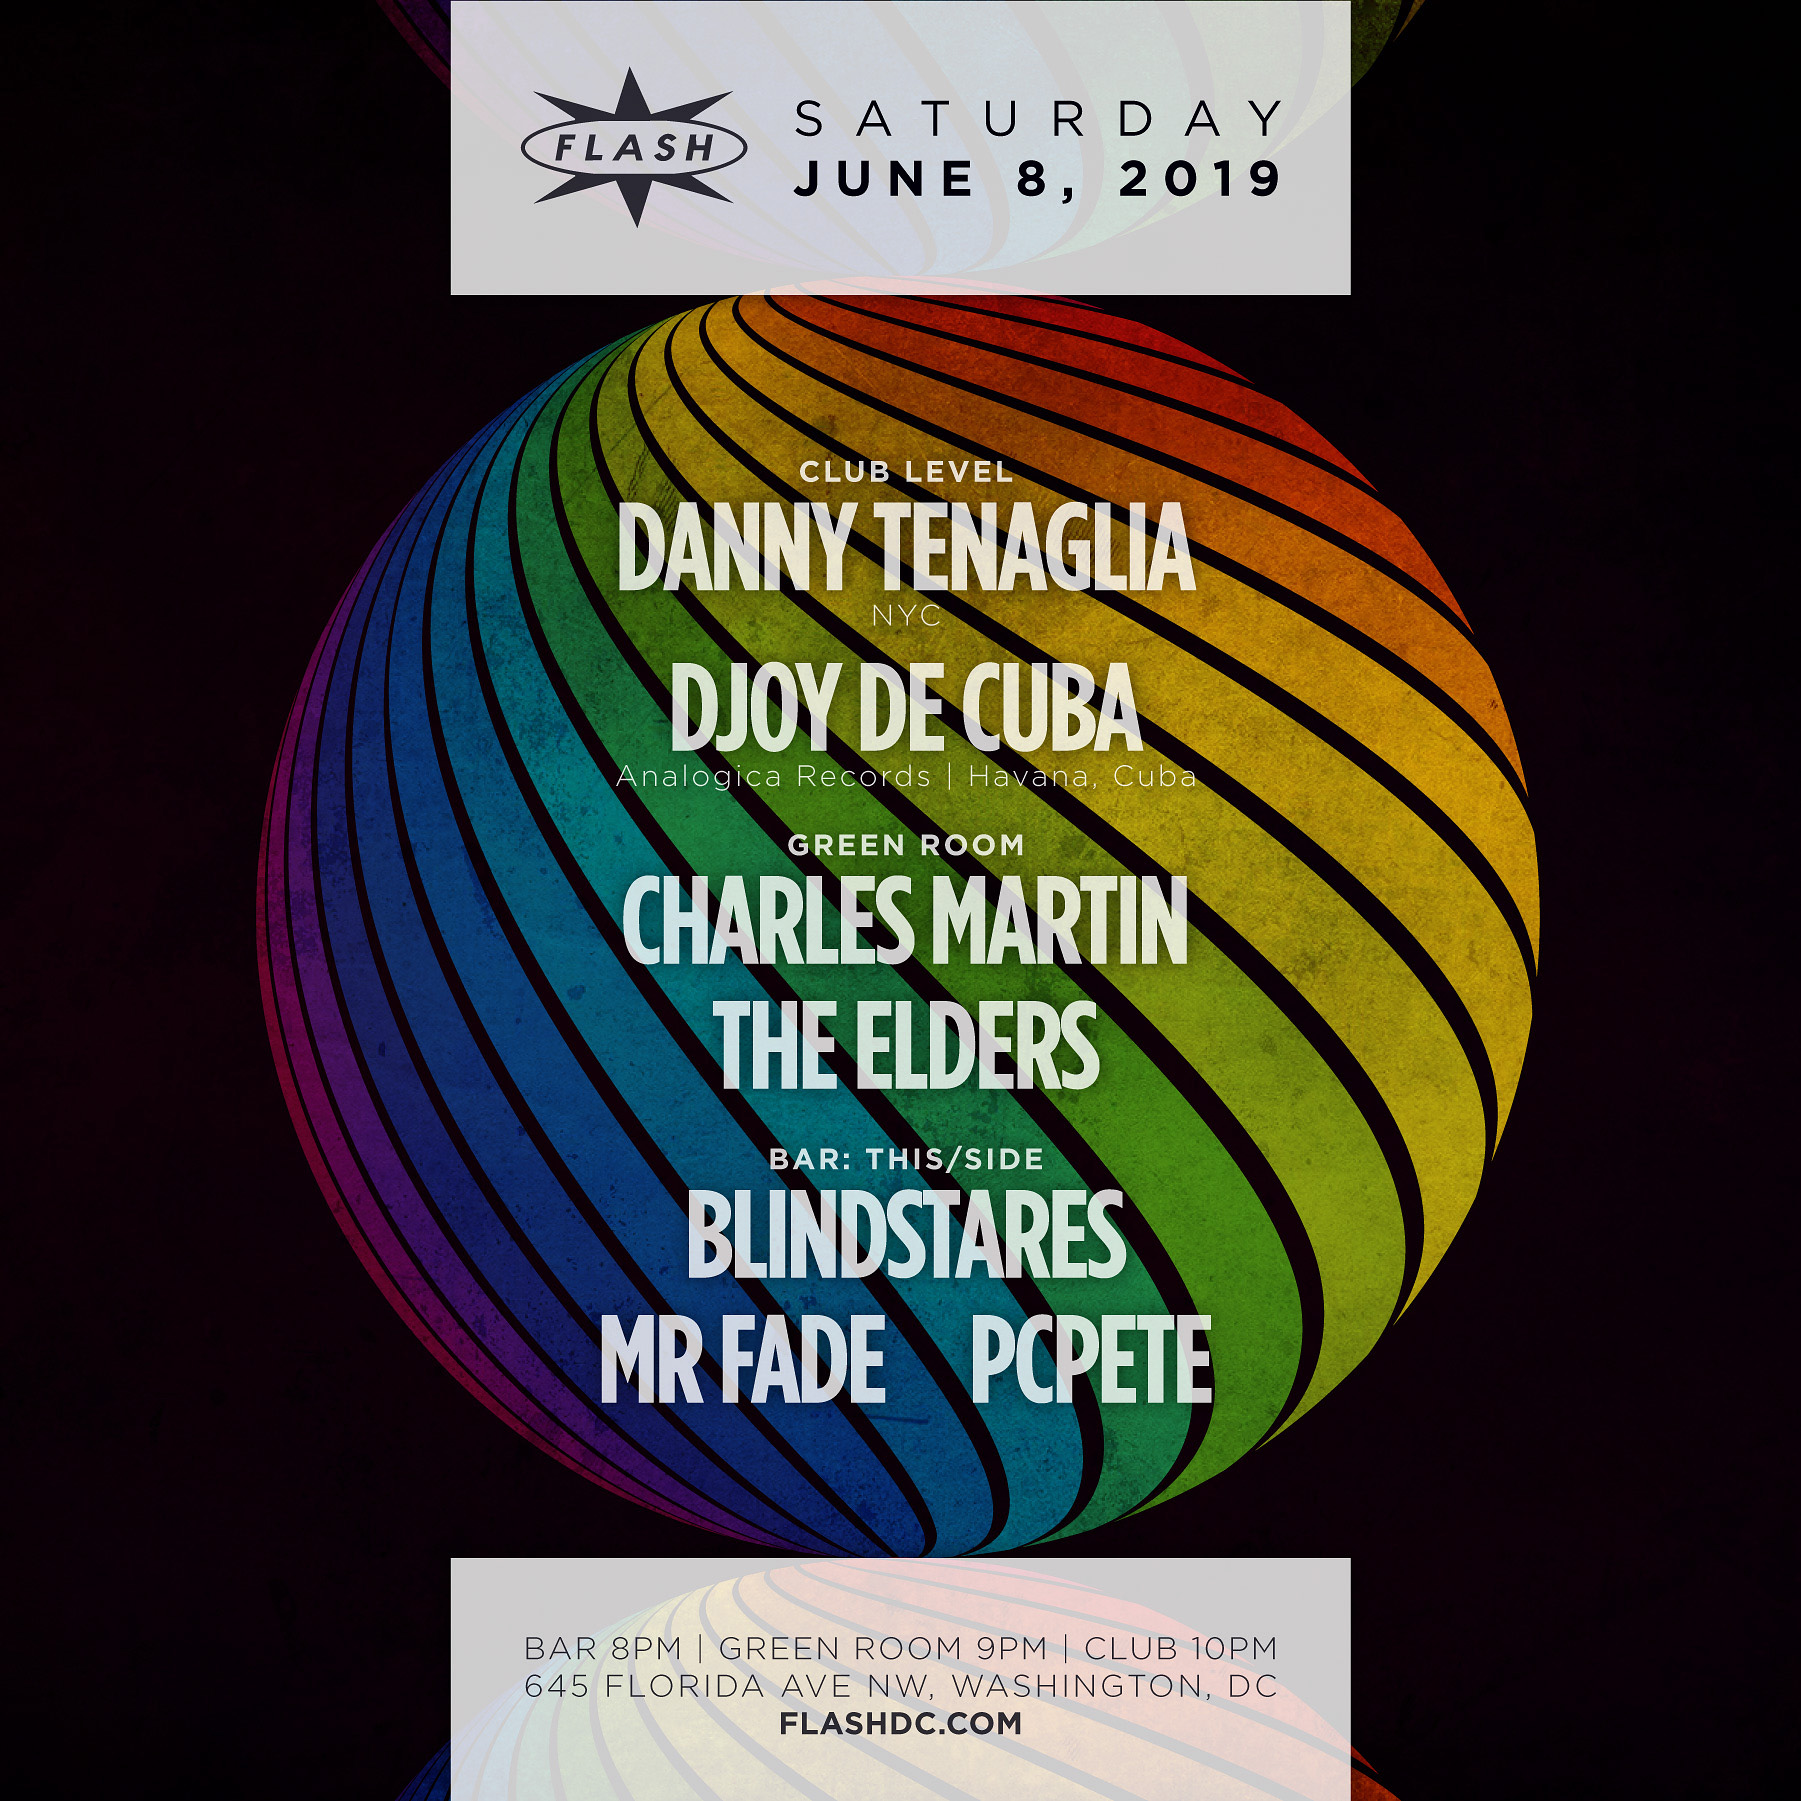 Pride Weekend: Danny Tenaglia - Djoy De Cuba at Flash on Saturday